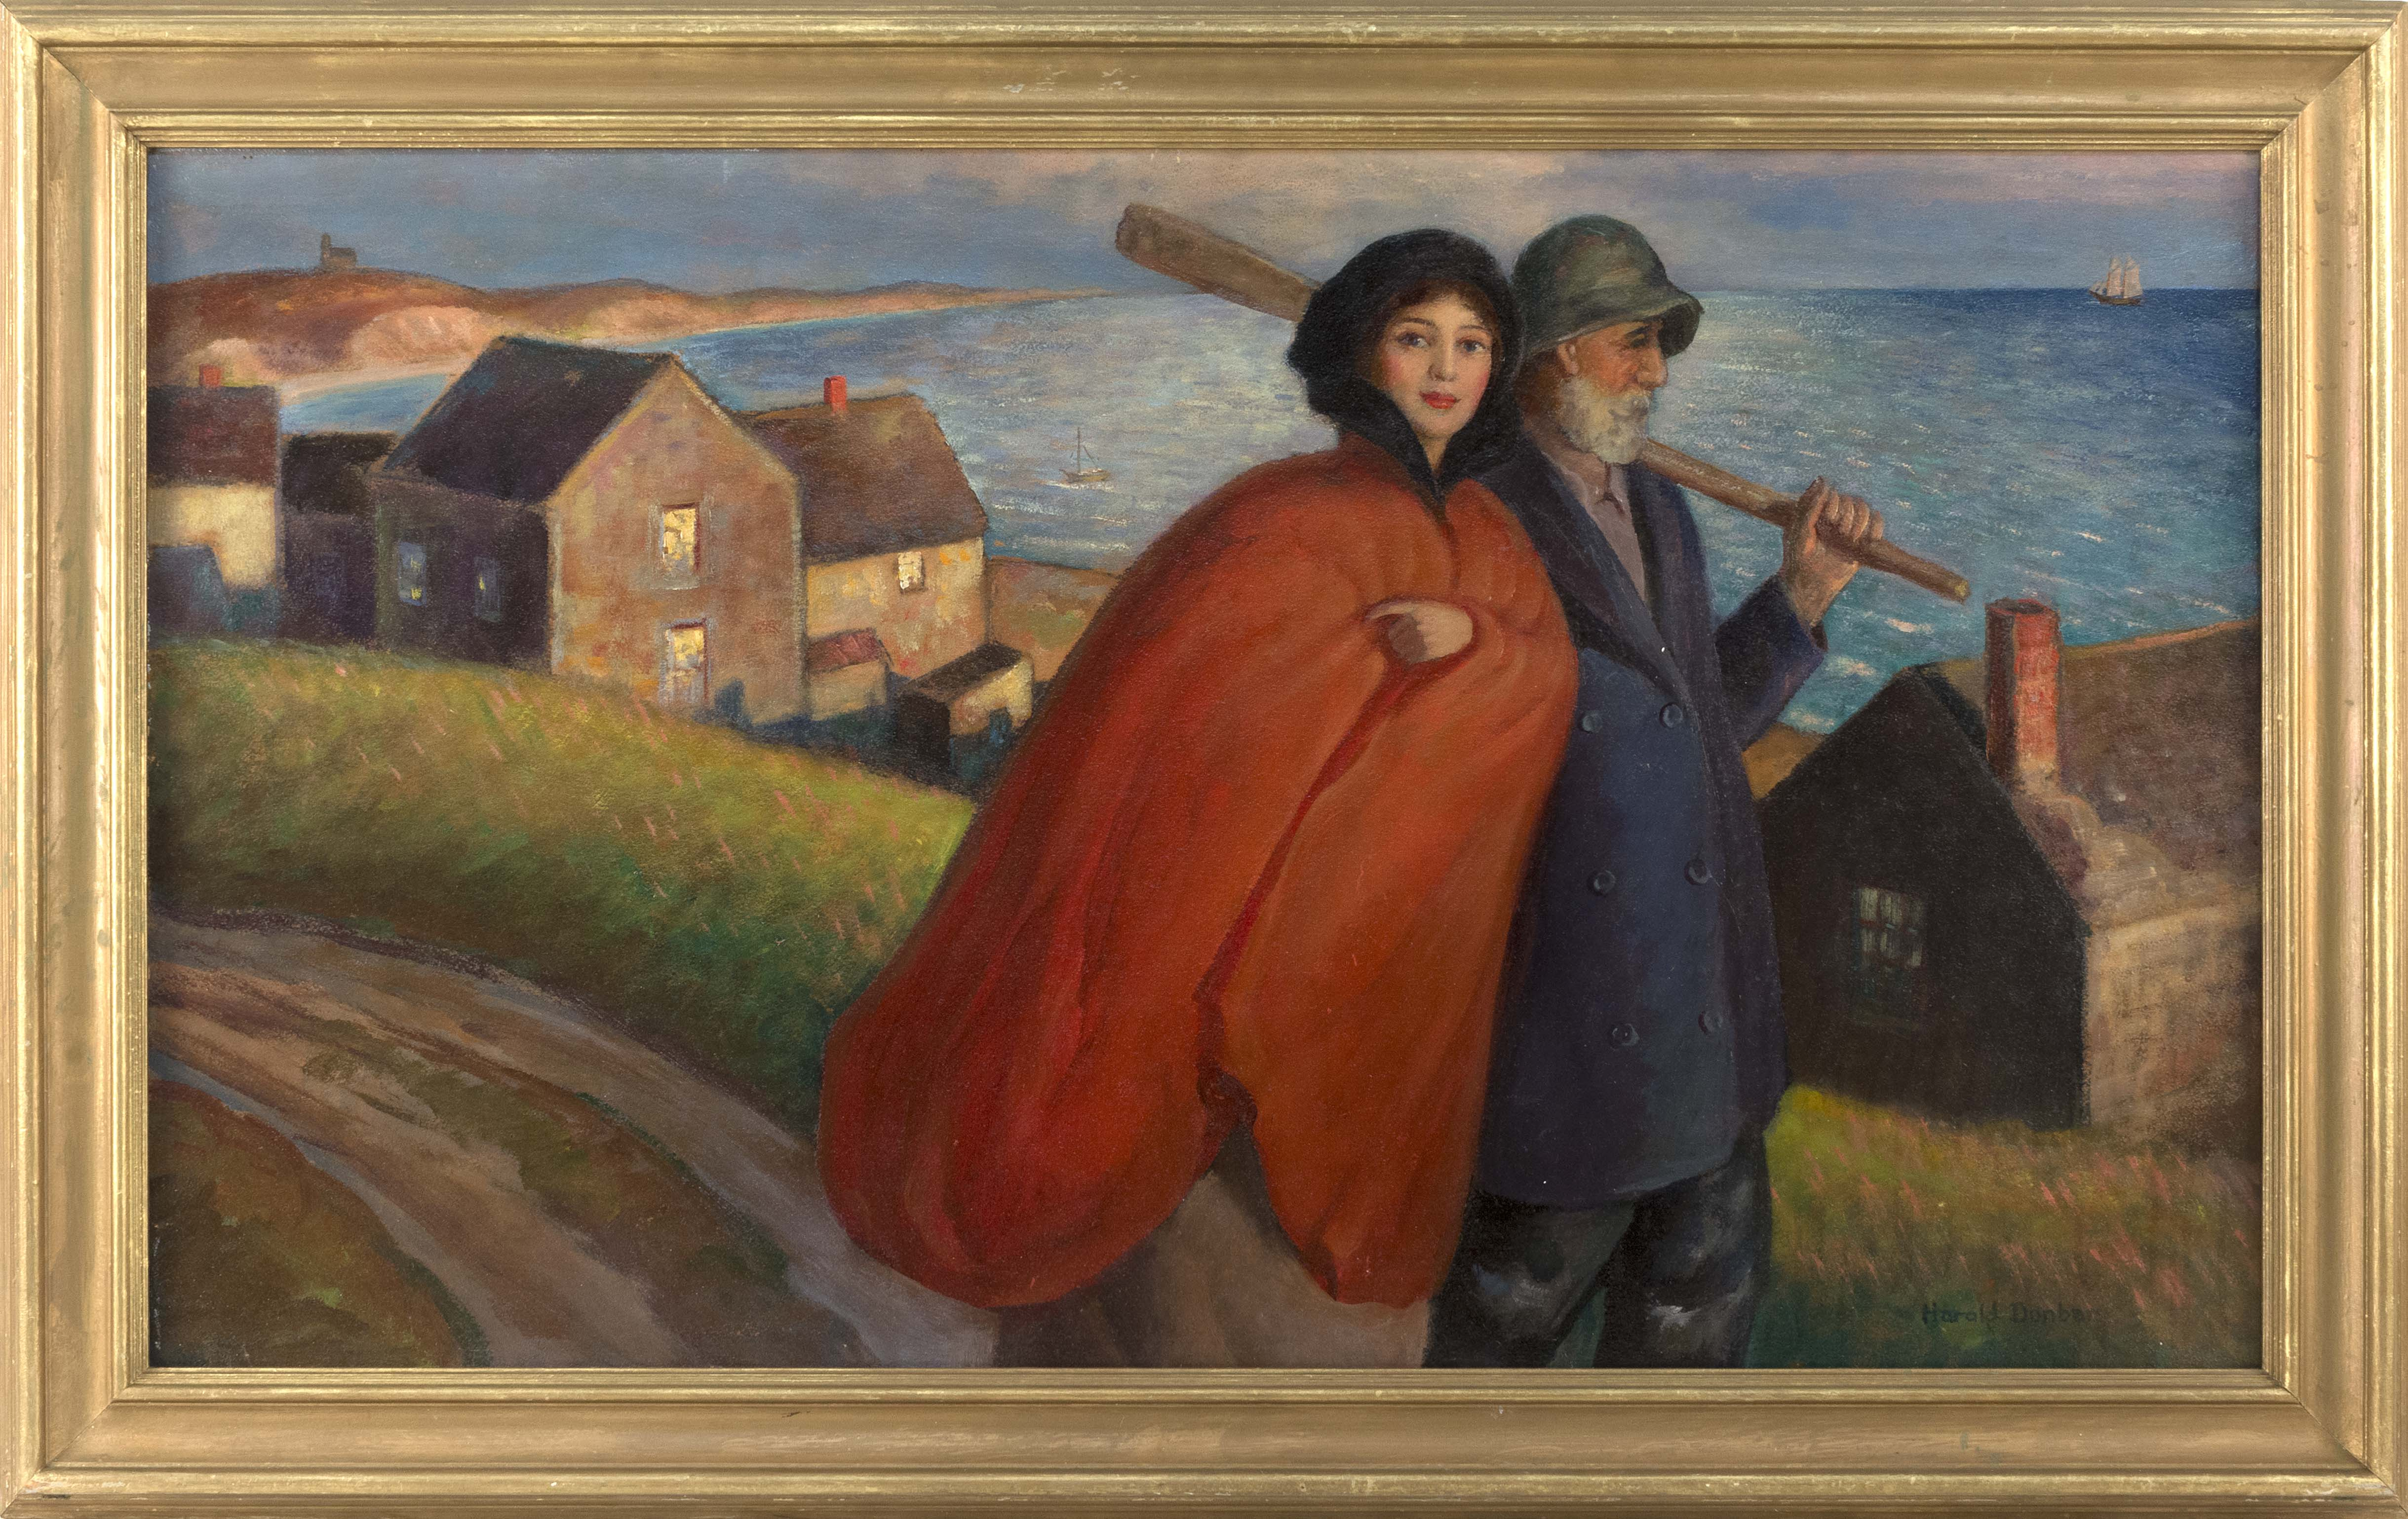 A Young Woman and a Captain on an Evening Stroll, Likely Chatham, Massachusetts, an undated but probably circa 1920s oil on board by Harold Dunbar. Eldred's sold it in August 2017 for $78,000 against an estimate of $3,000 to $5,000--stomping the artist's previous auction record several times over.